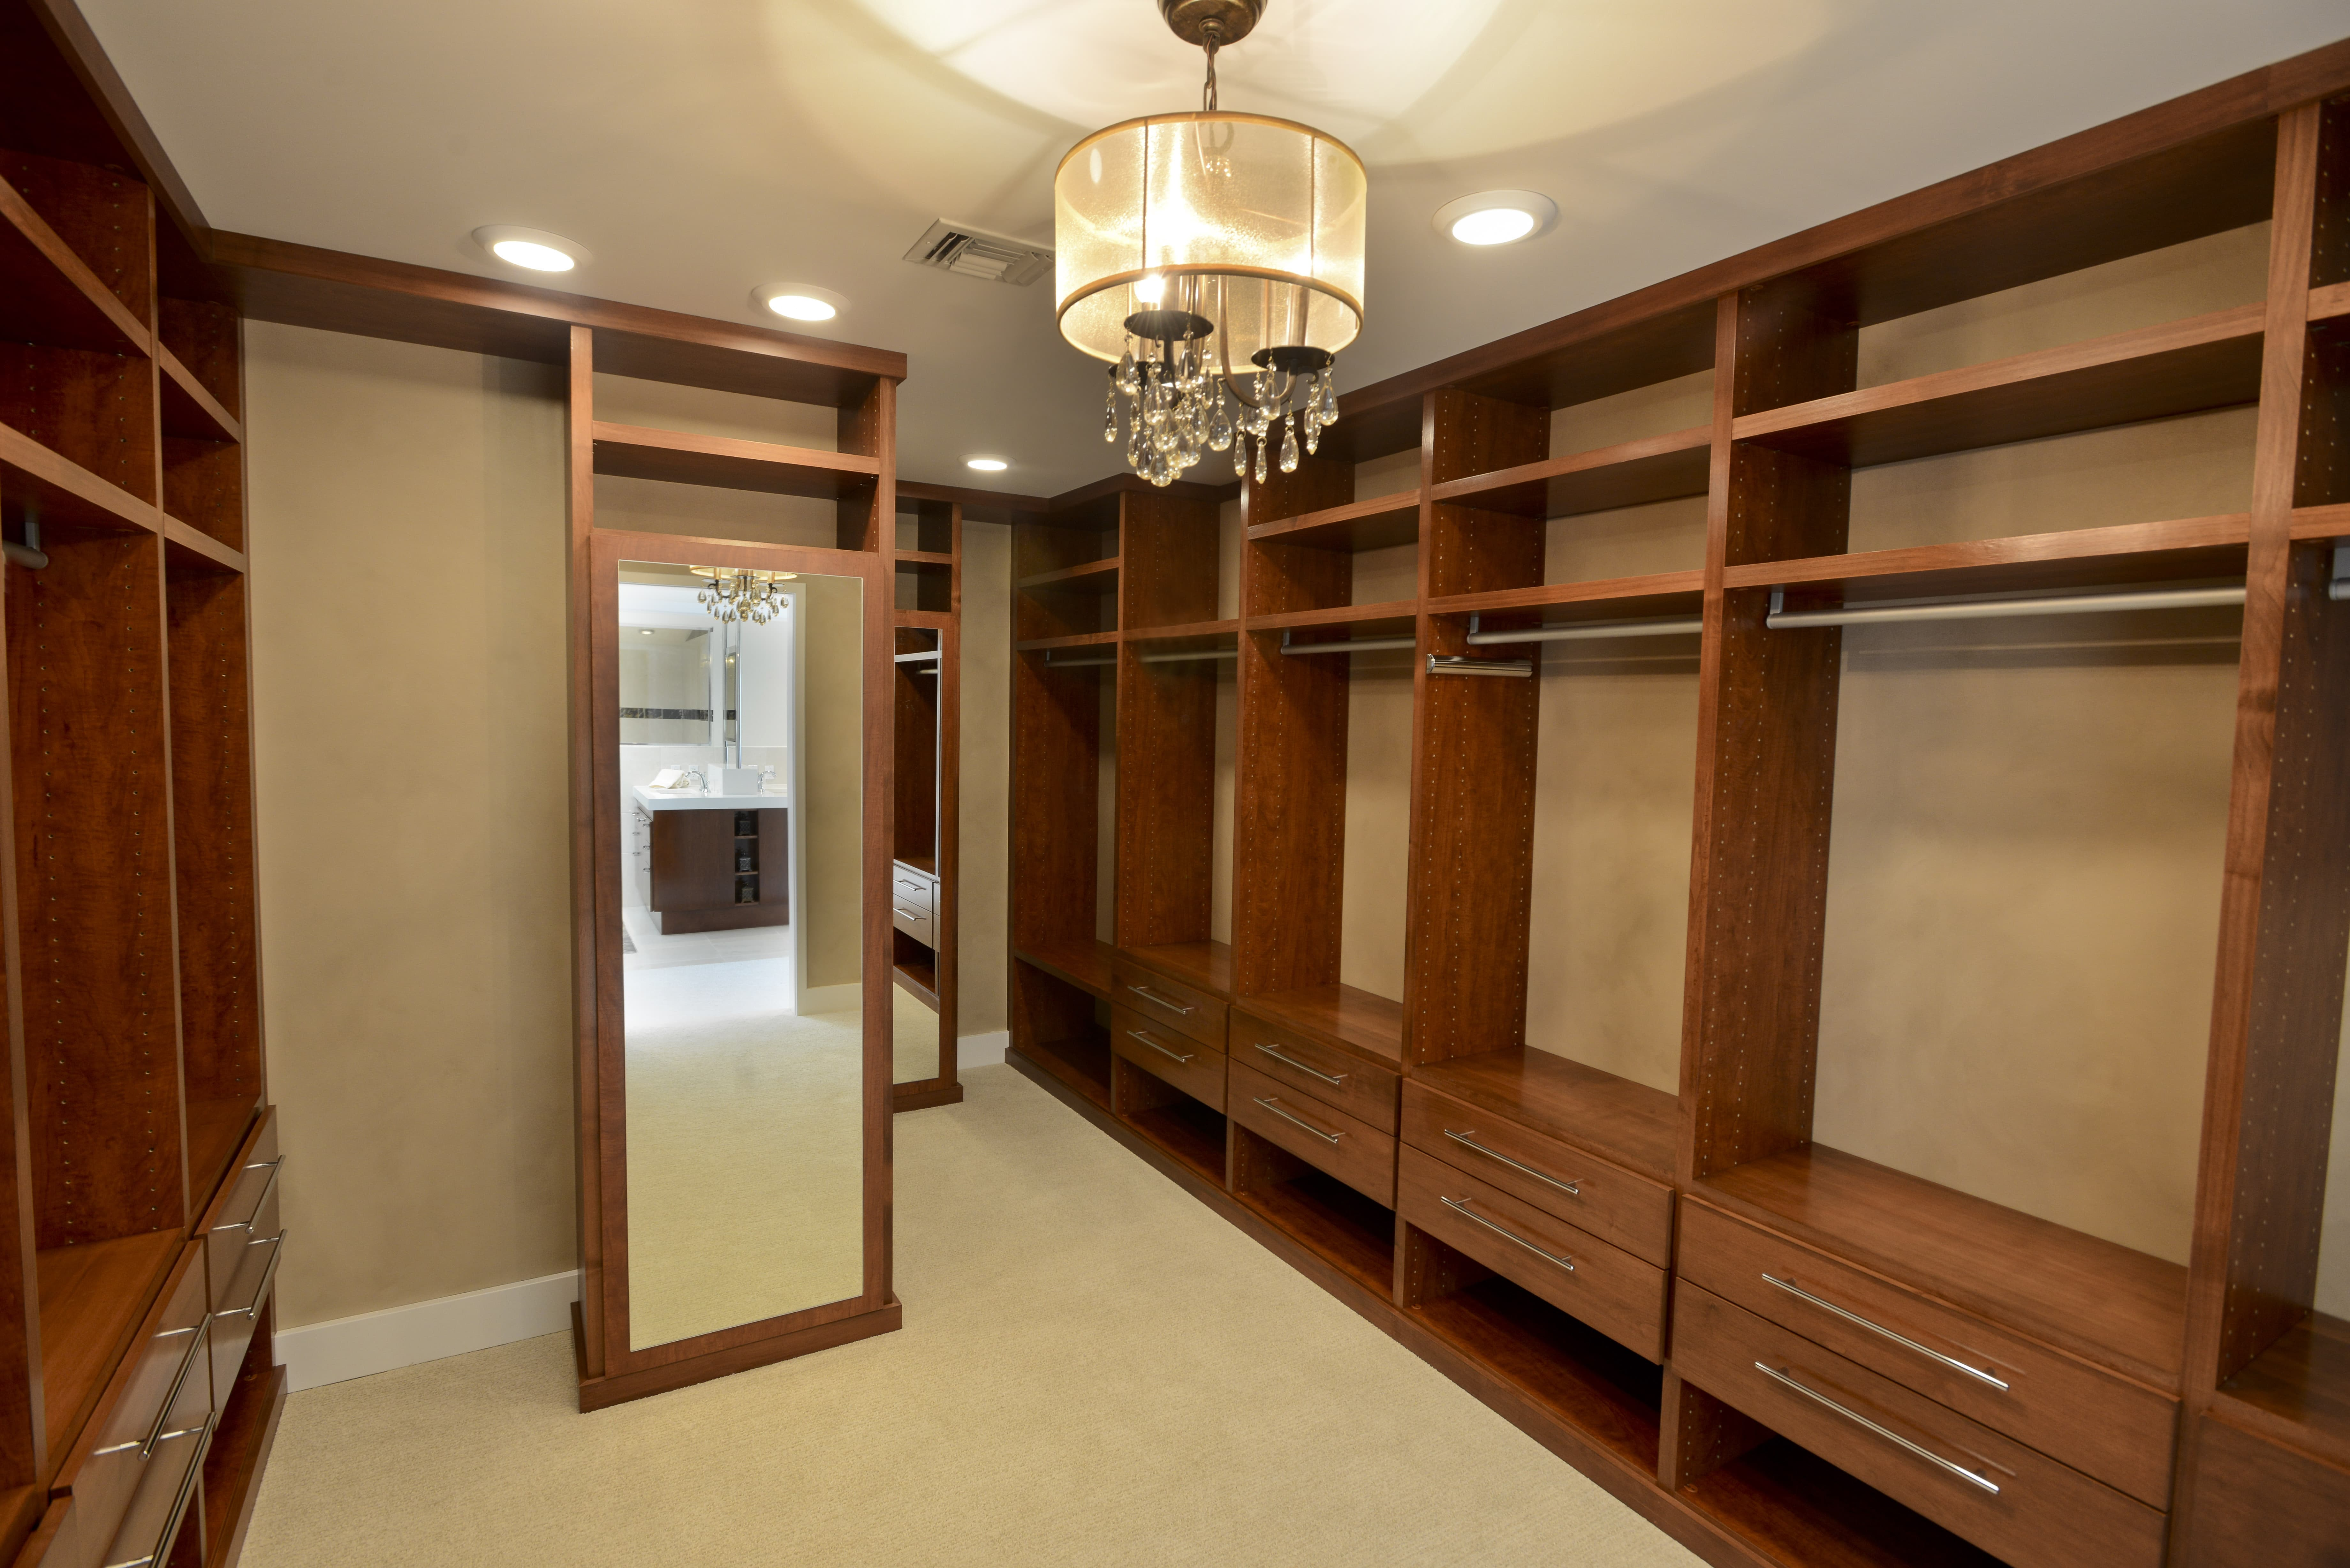 closets s designs his secrets shares news top denver crain by closet article design lisa la adams